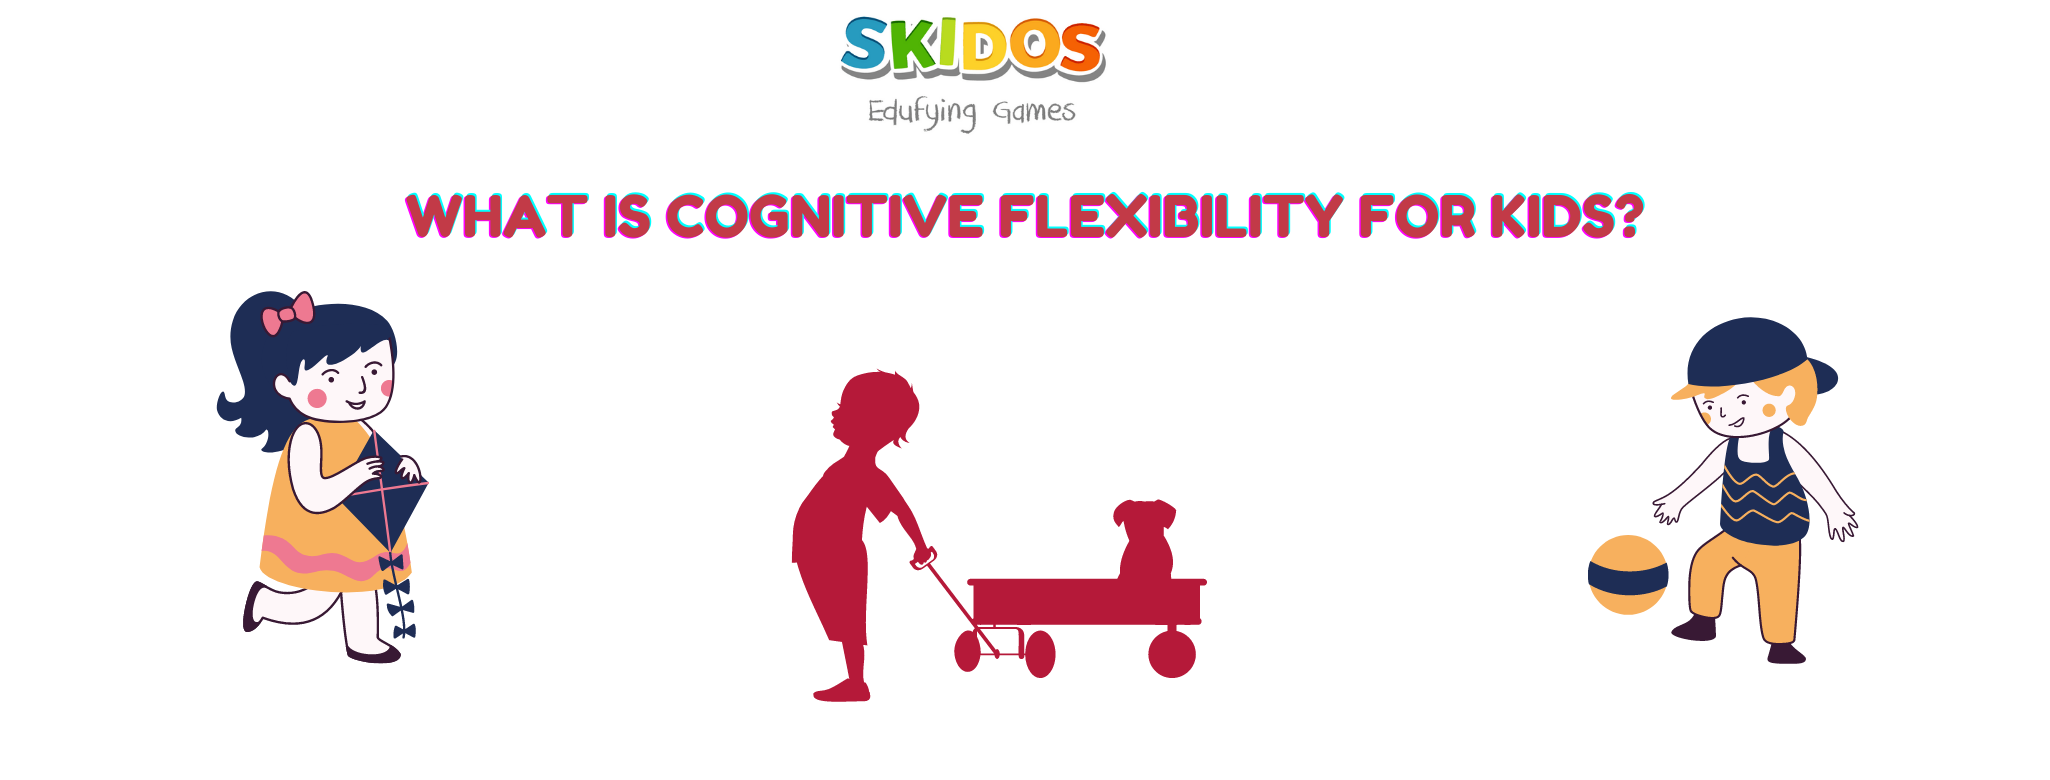 What is cognitive flexibility for kids